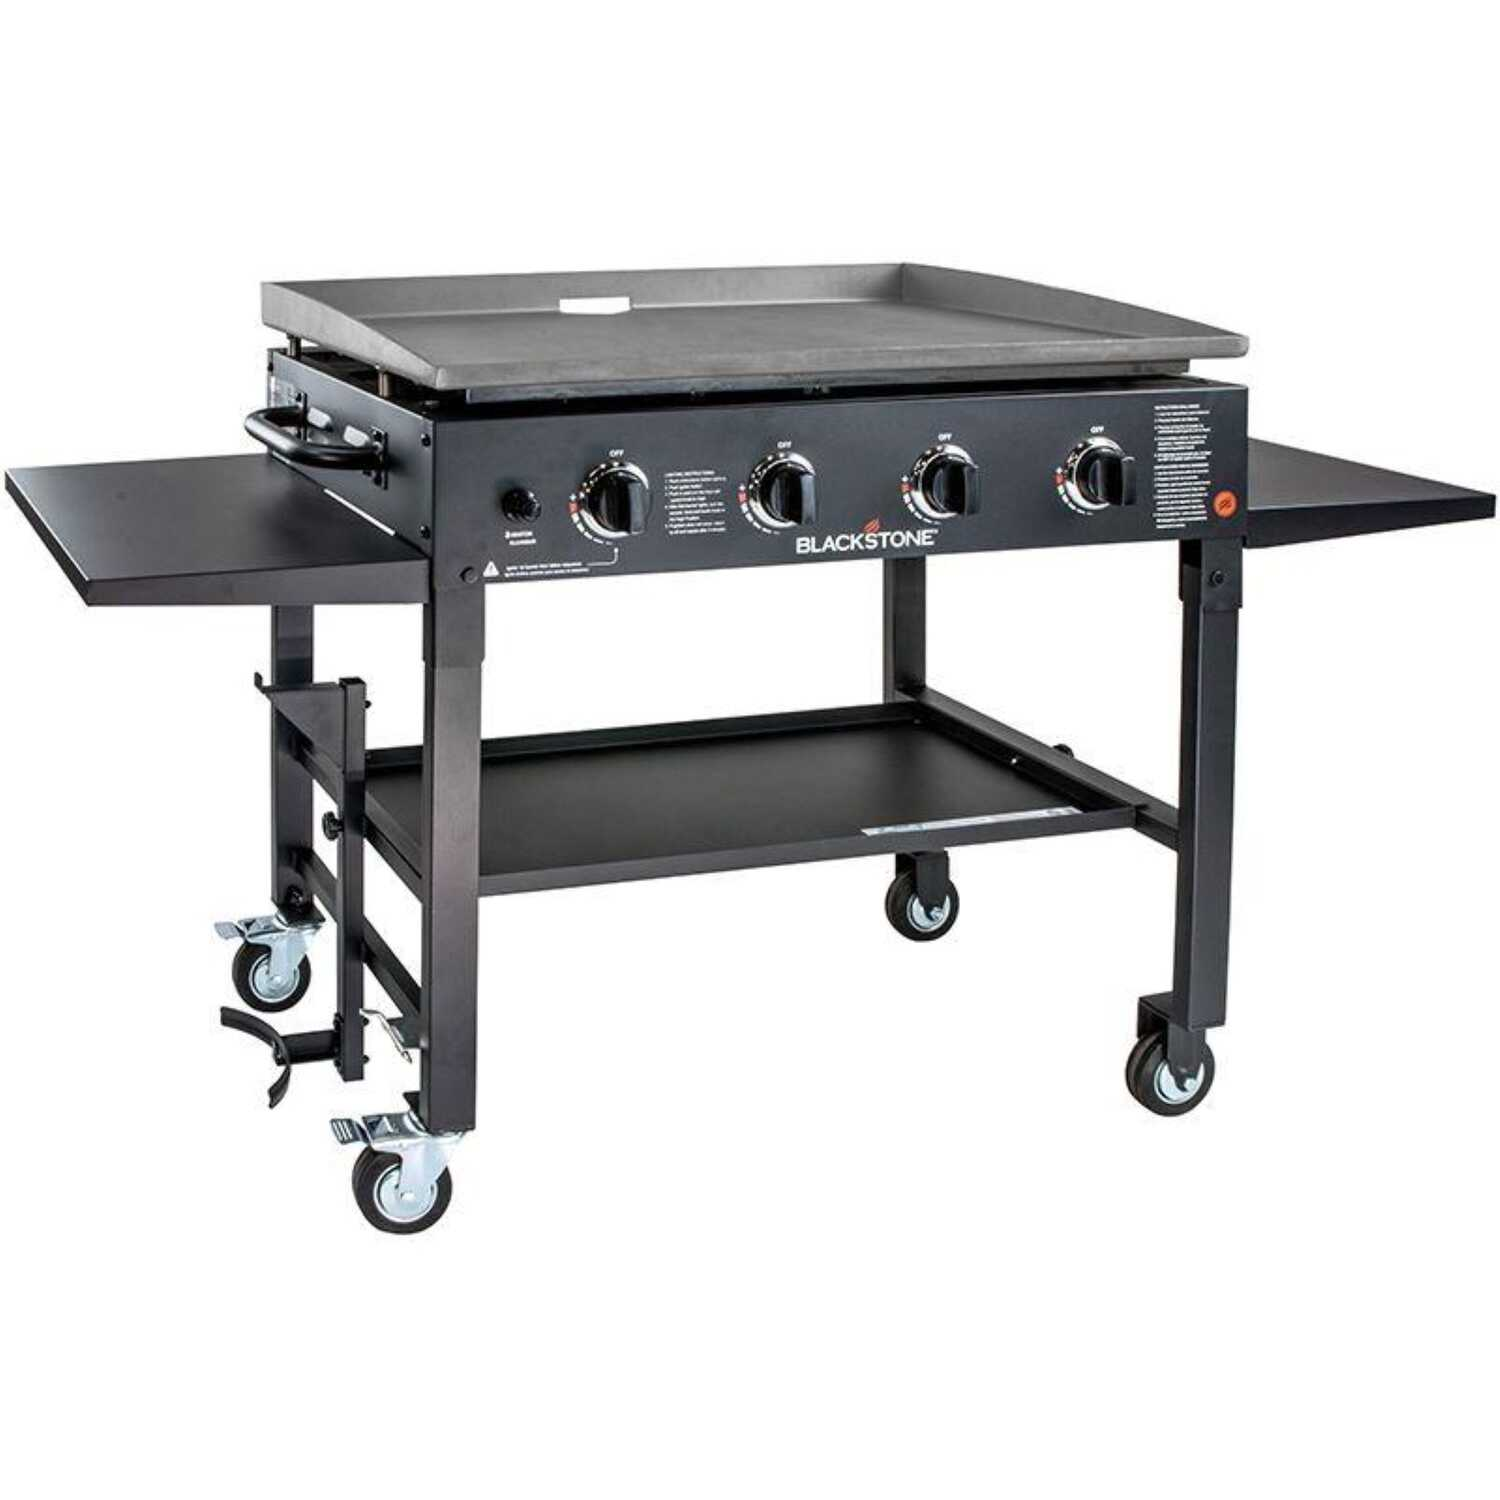 Blackstone  36 in.  4 burners Propane  Grill  Black  60000 BTU